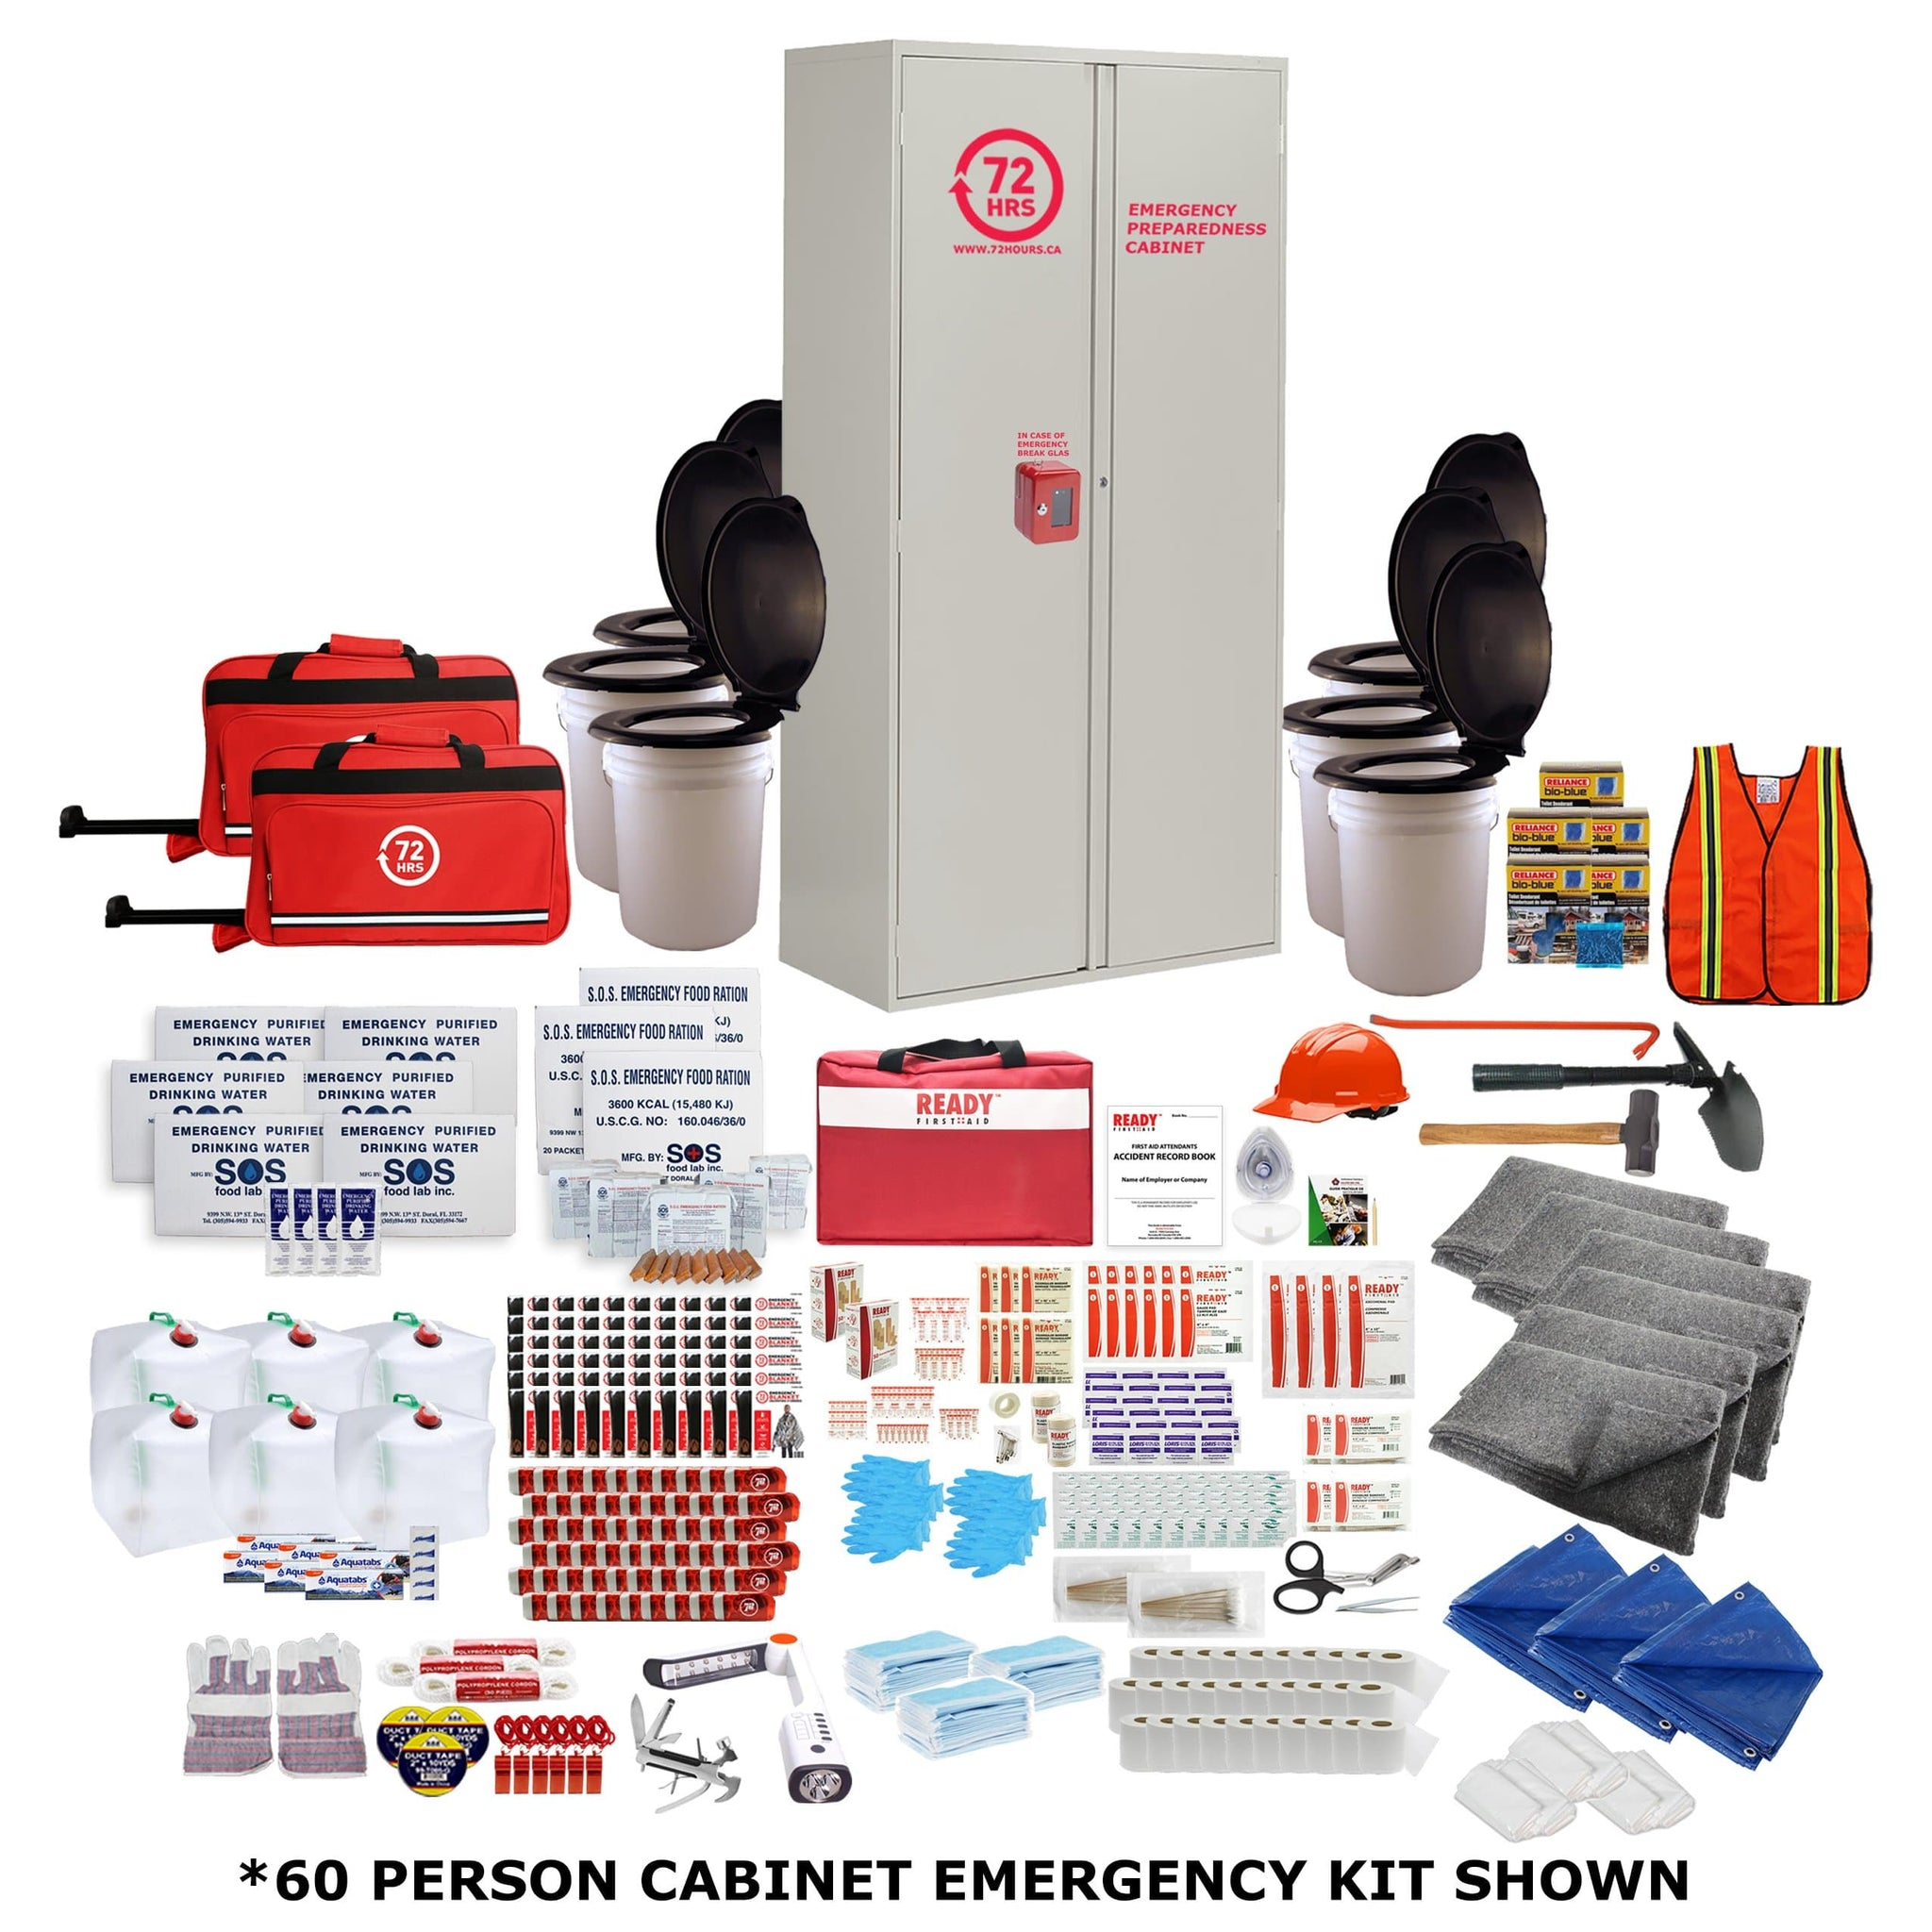 80 Person Emergency Cabinet Kit